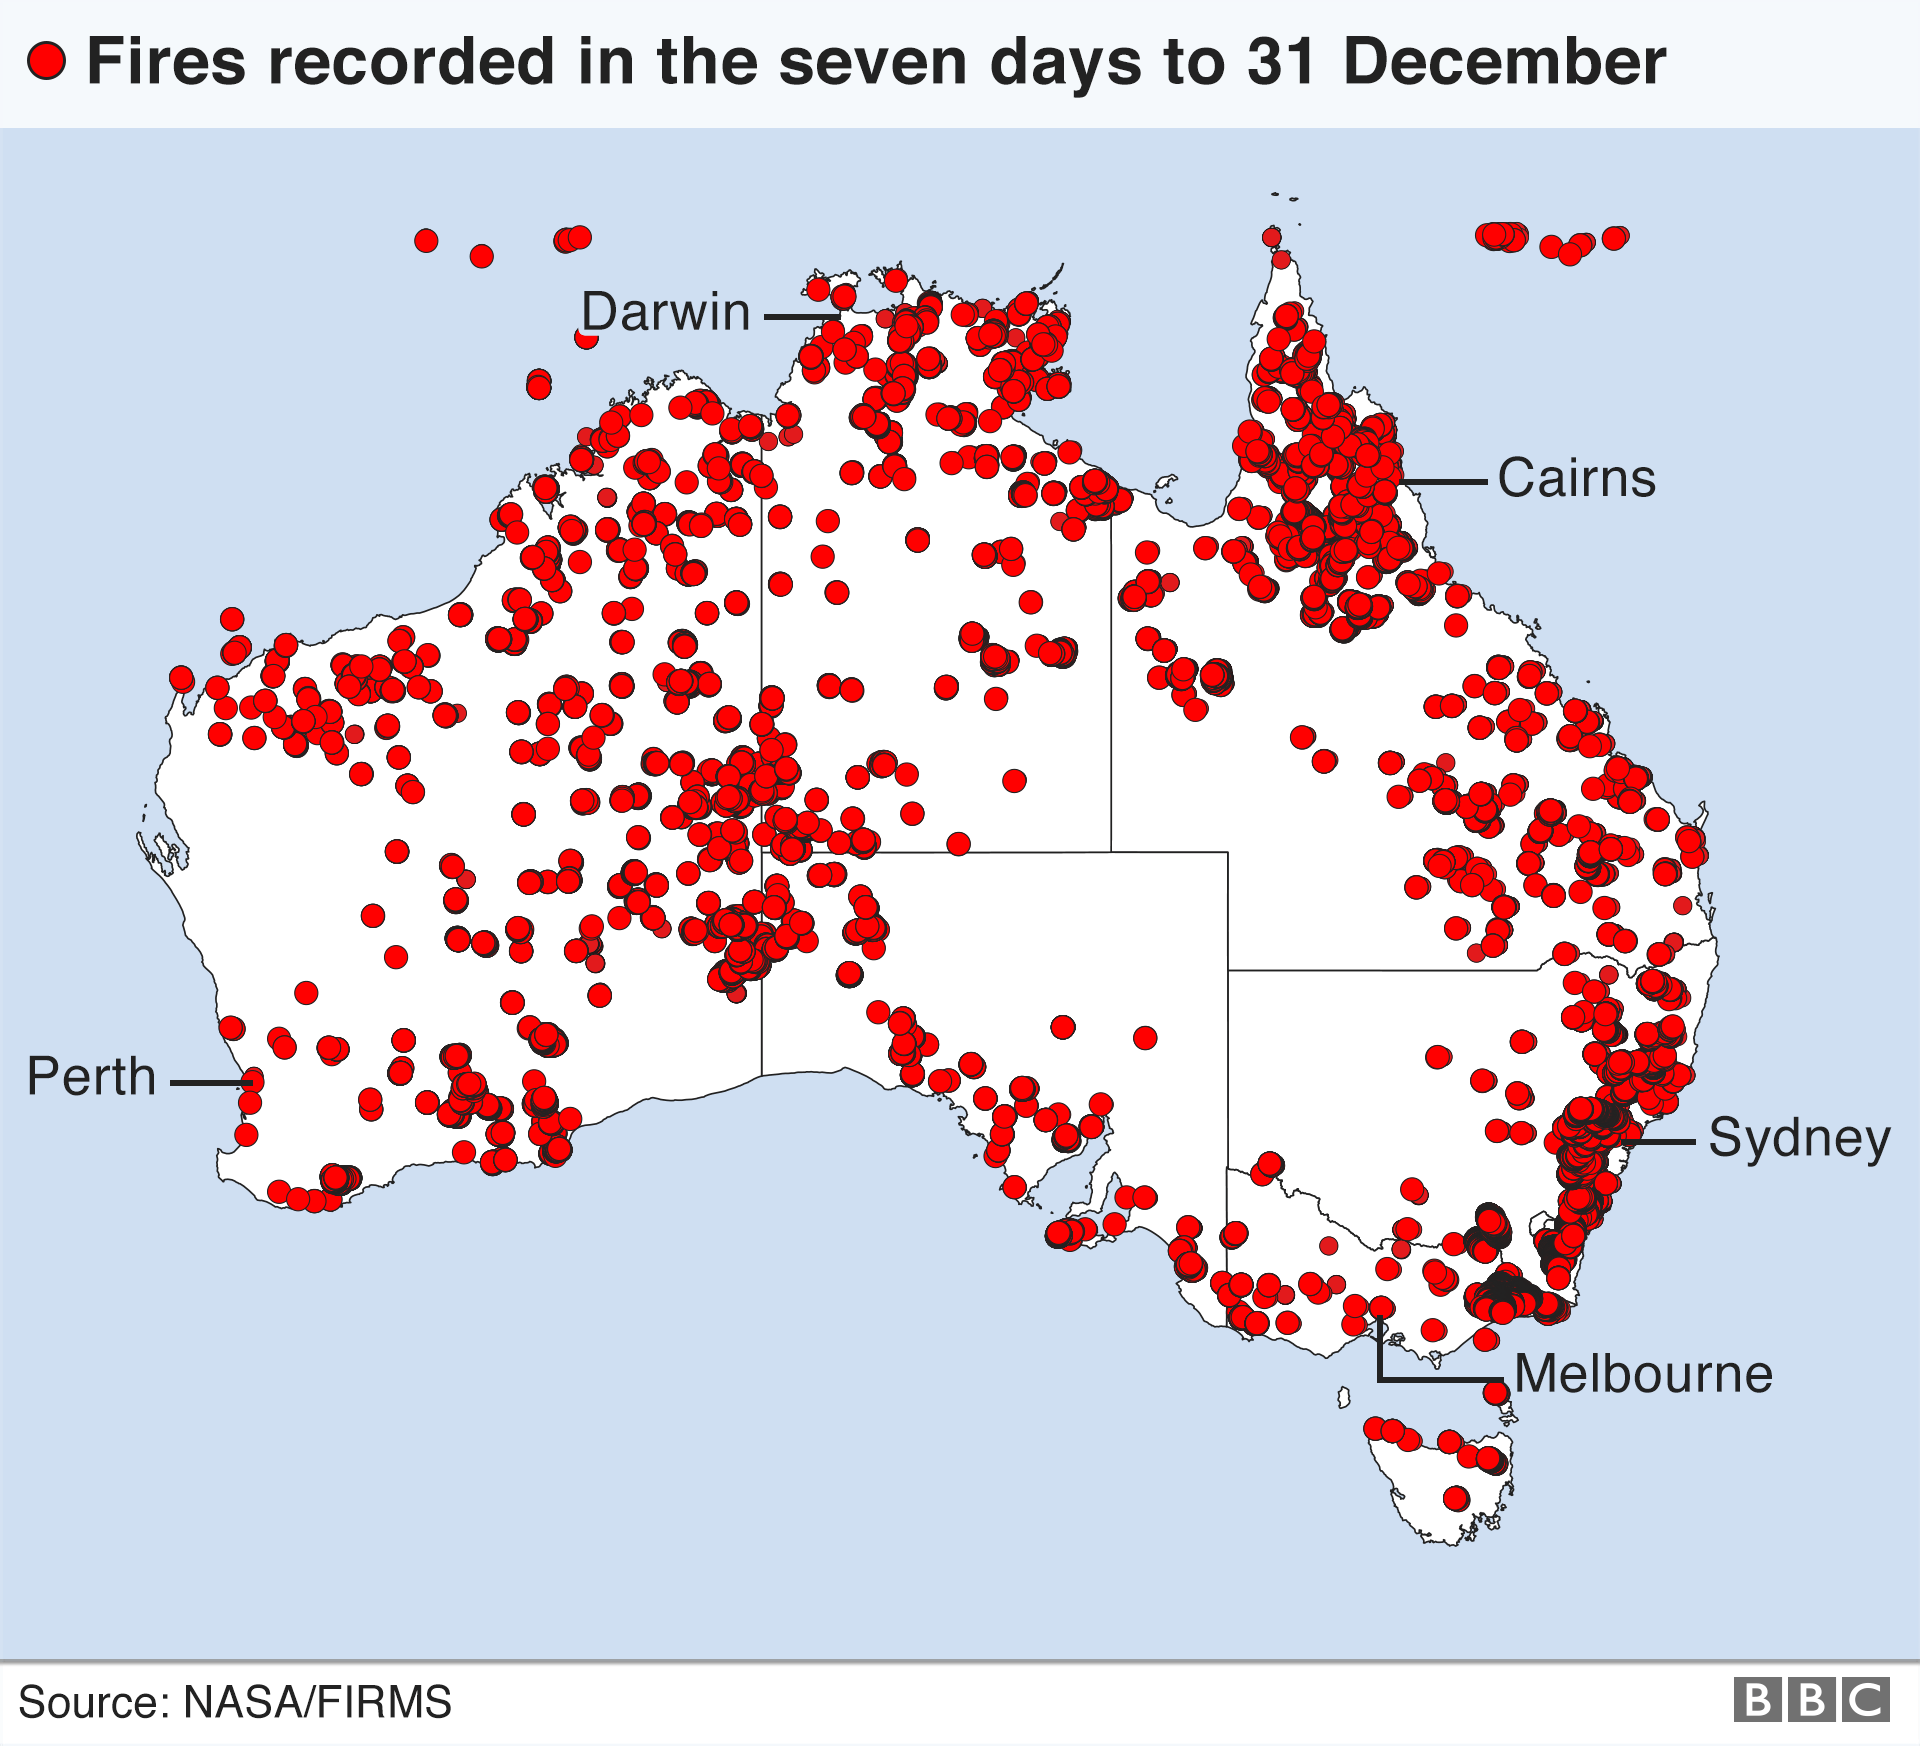 Map of Australia fires recorded as active in the seven days up to 31 December 2019